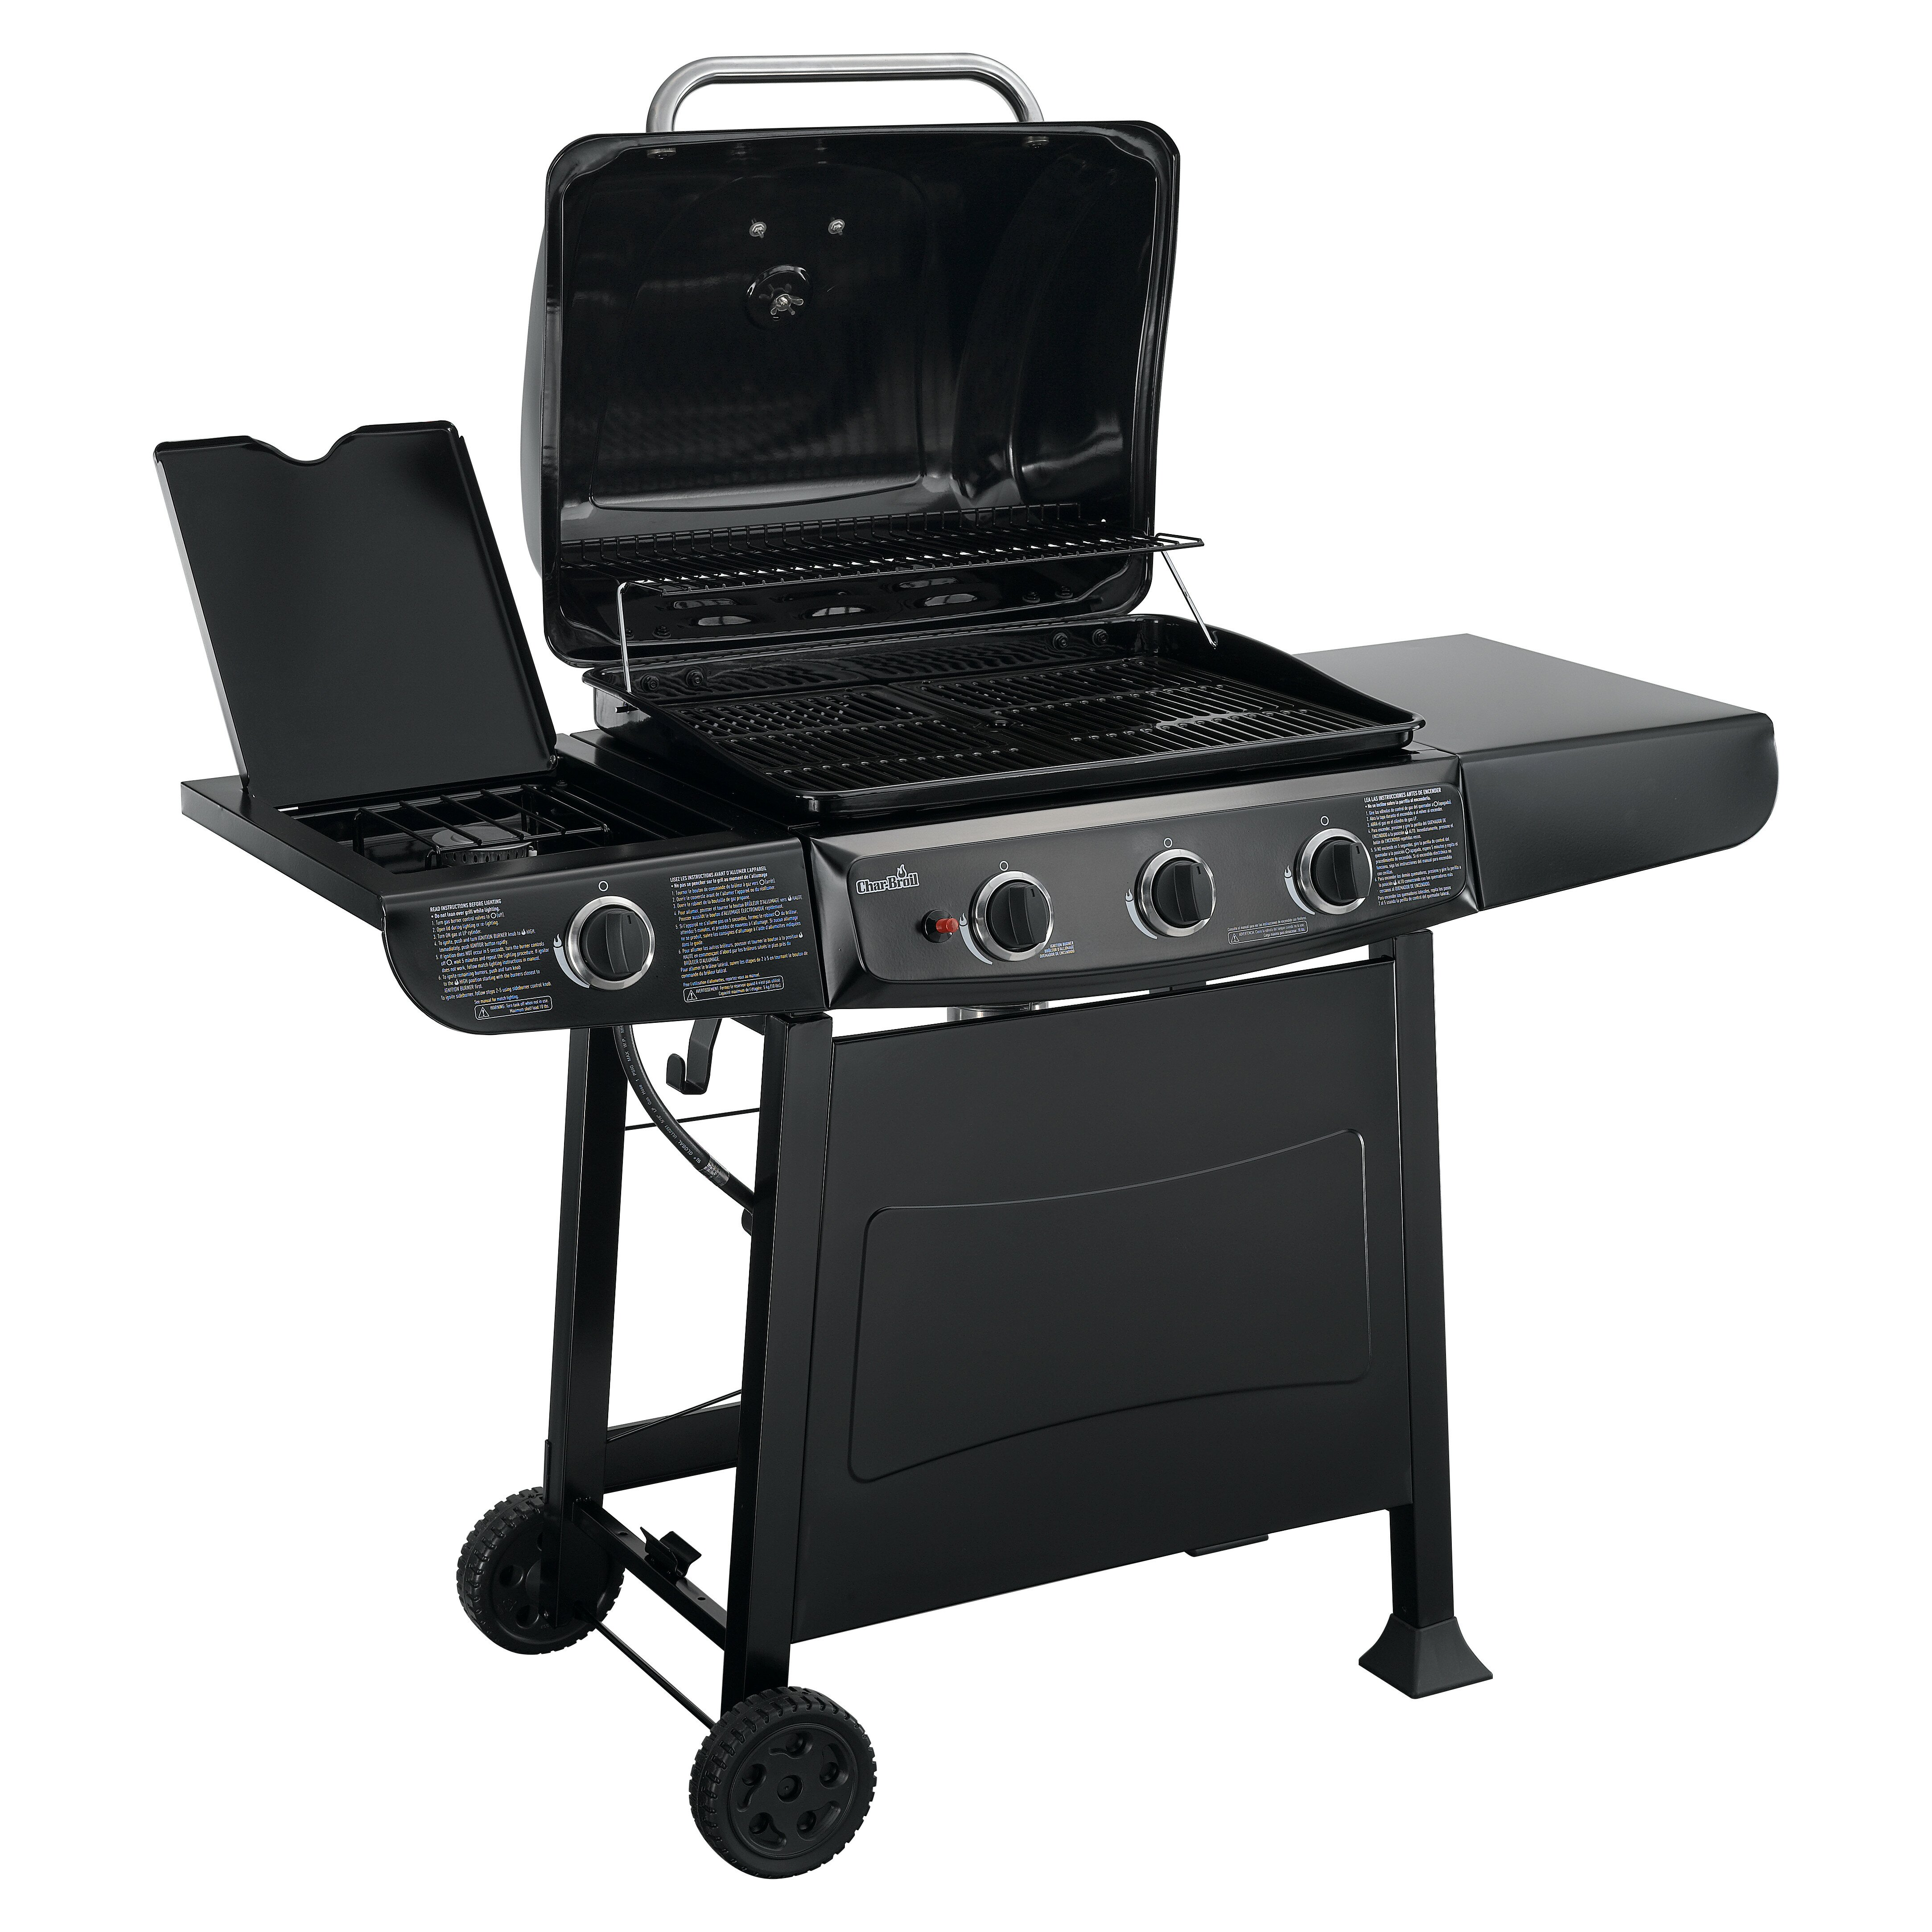 charbroil gas grill with side burner reviews wayfair. Black Bedroom Furniture Sets. Home Design Ideas